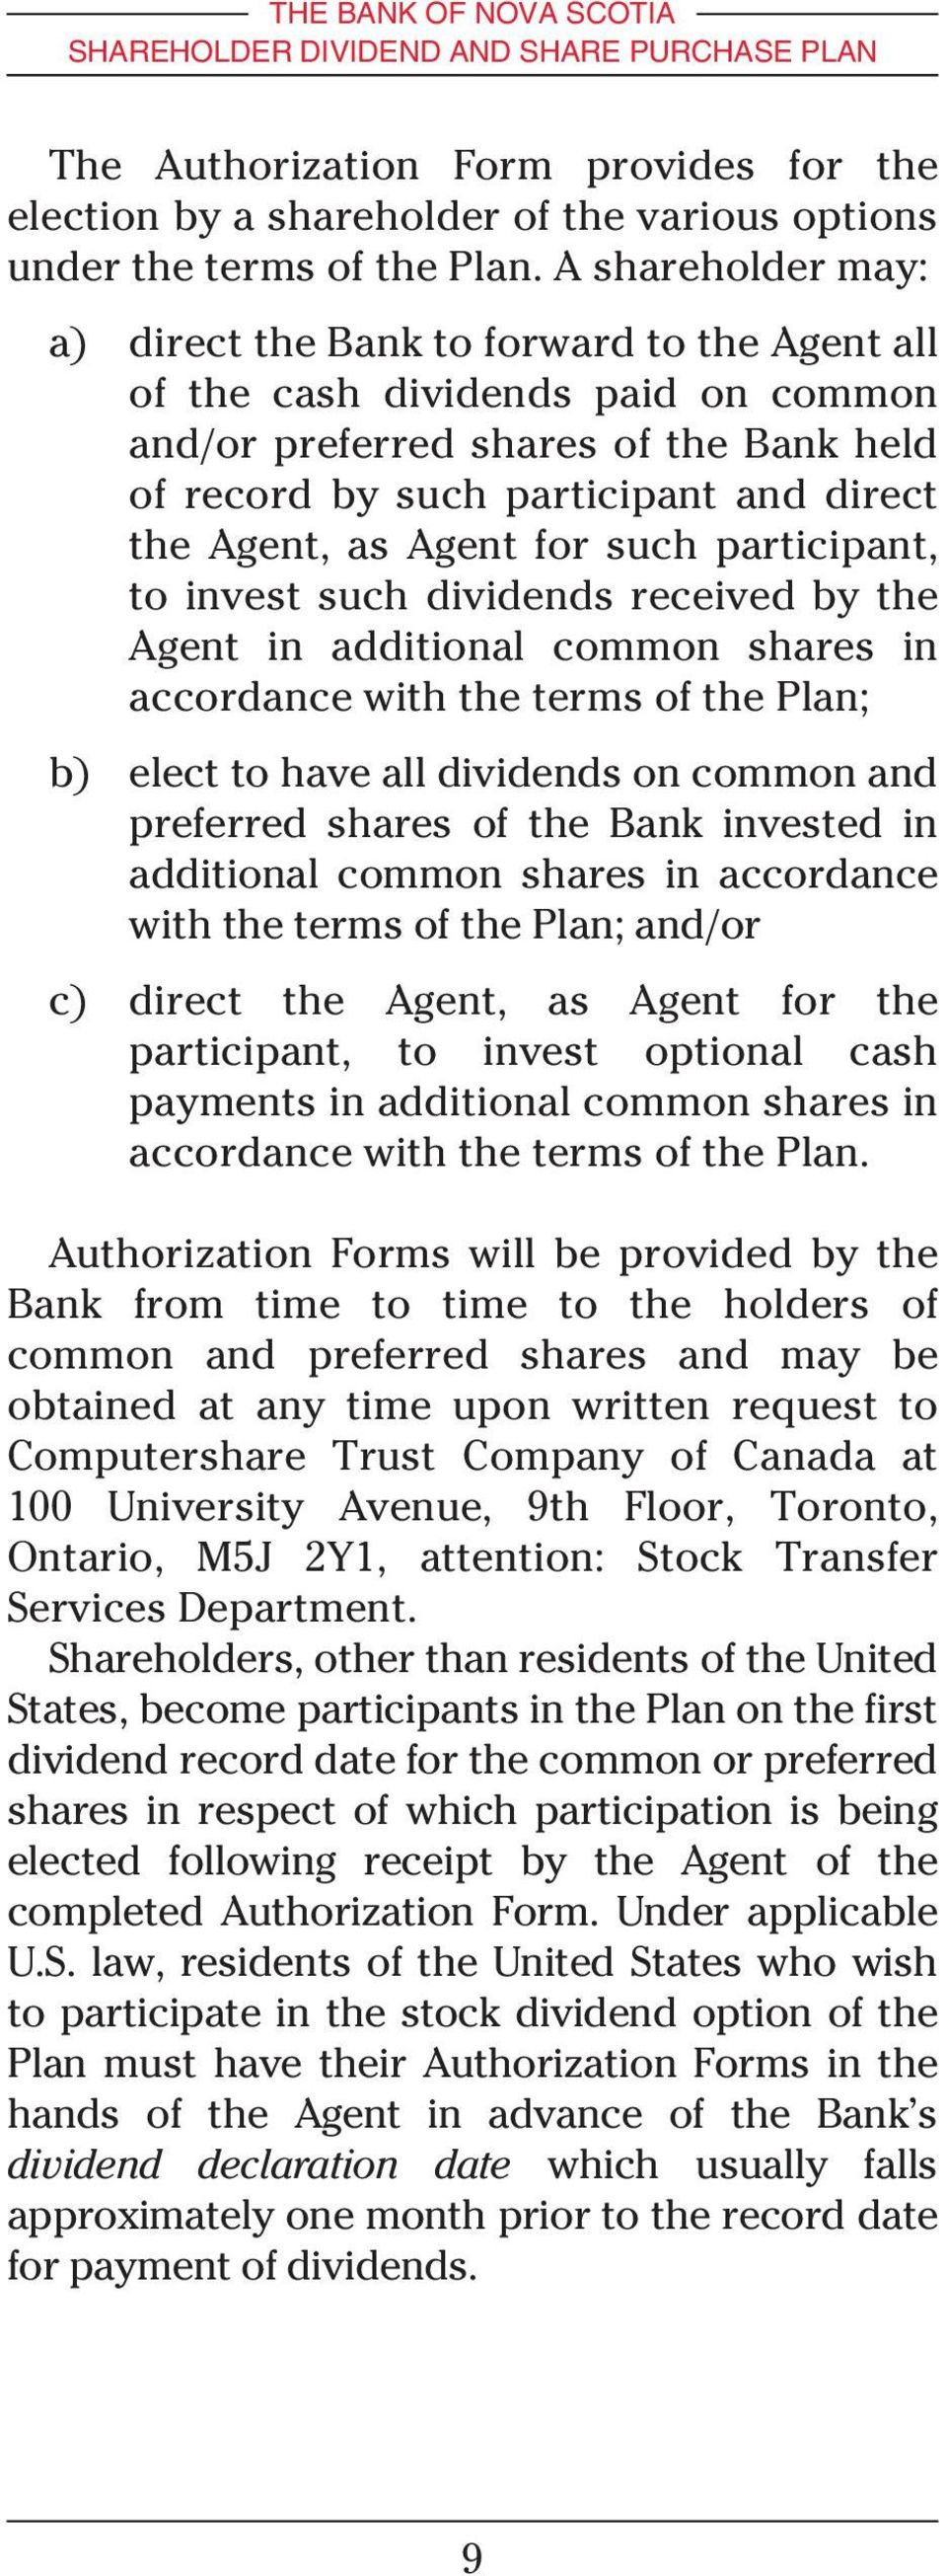 Agent for such participant, to invest such dividends received by the Agent in additional common shares in accordance with the terms of the Plan; b) elect to have all dividends on common and preferred